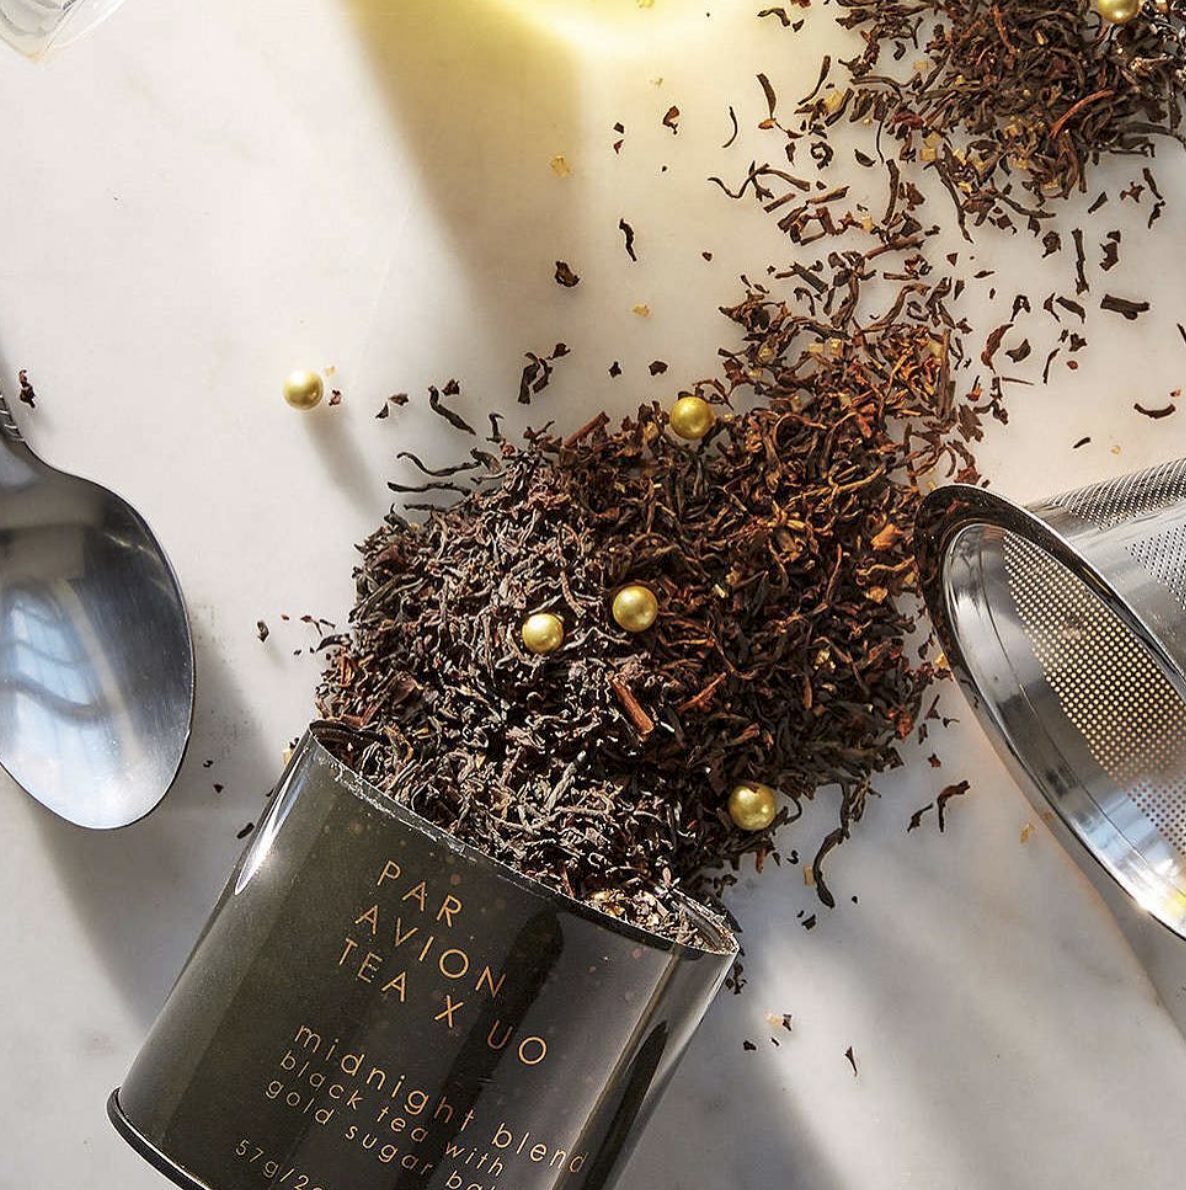 PAR AVION TEA X UO - FROM A COLLAB BETWEEN PAR AVION TEA & URBAN OUTFITTERS TEA THAT SPARKLES IN YOUR MUG